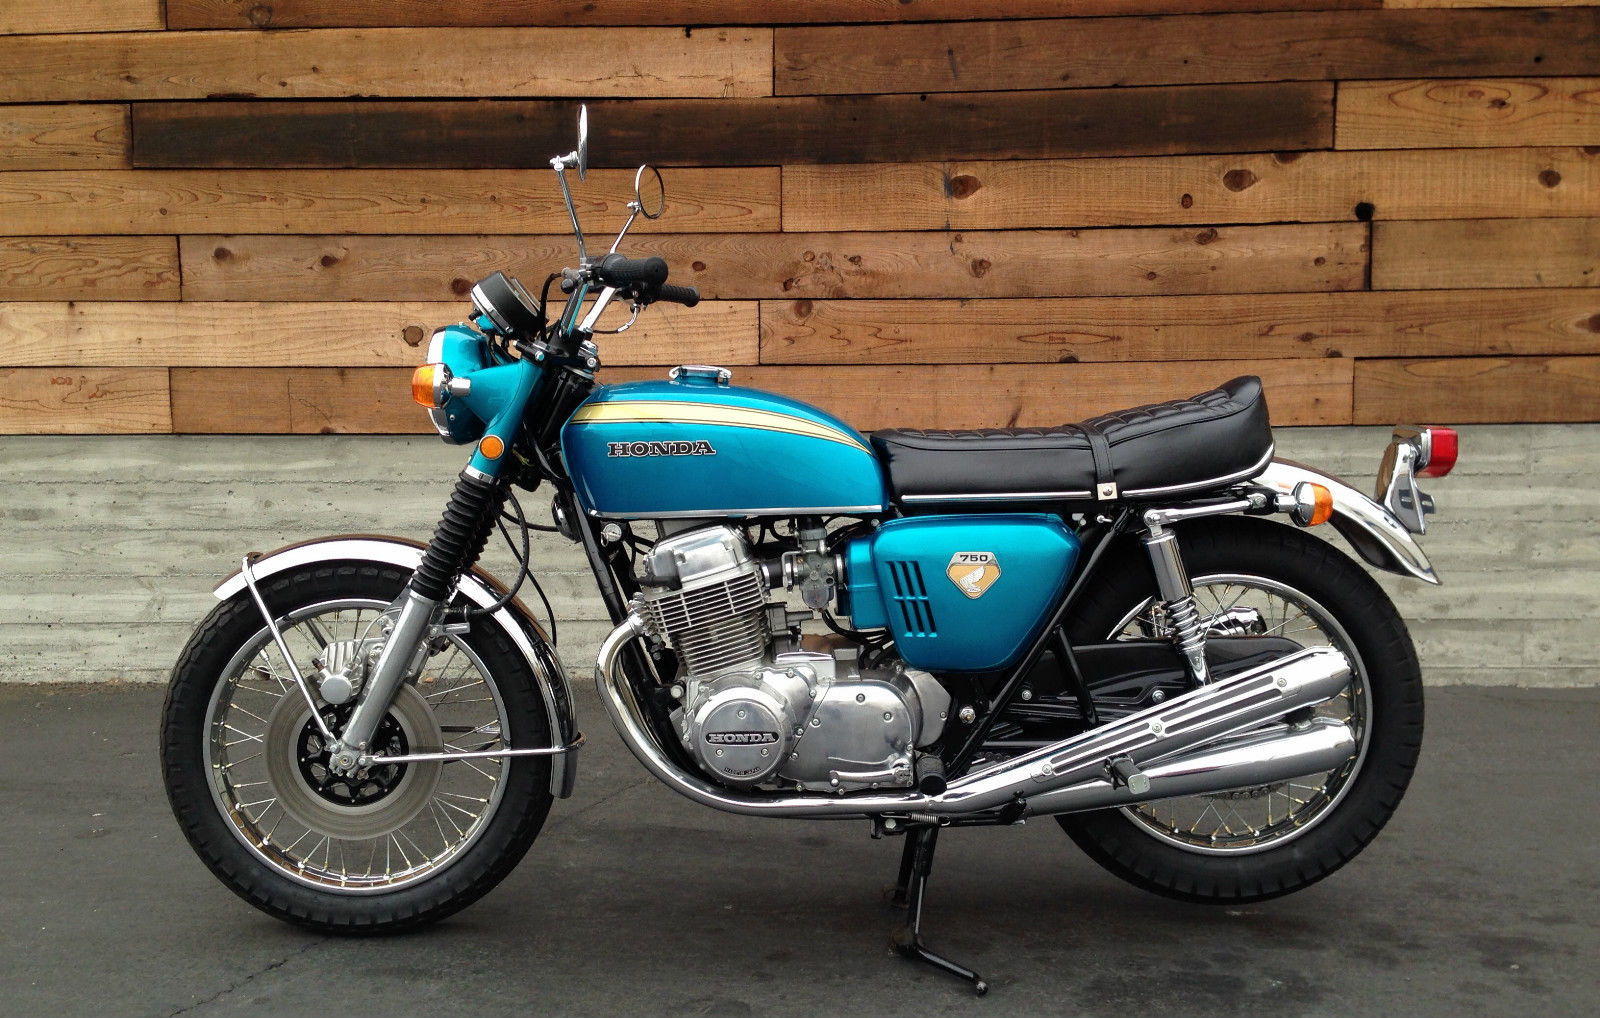 Return of the Cafe Racers - Peace, Grease and the Honda CB750